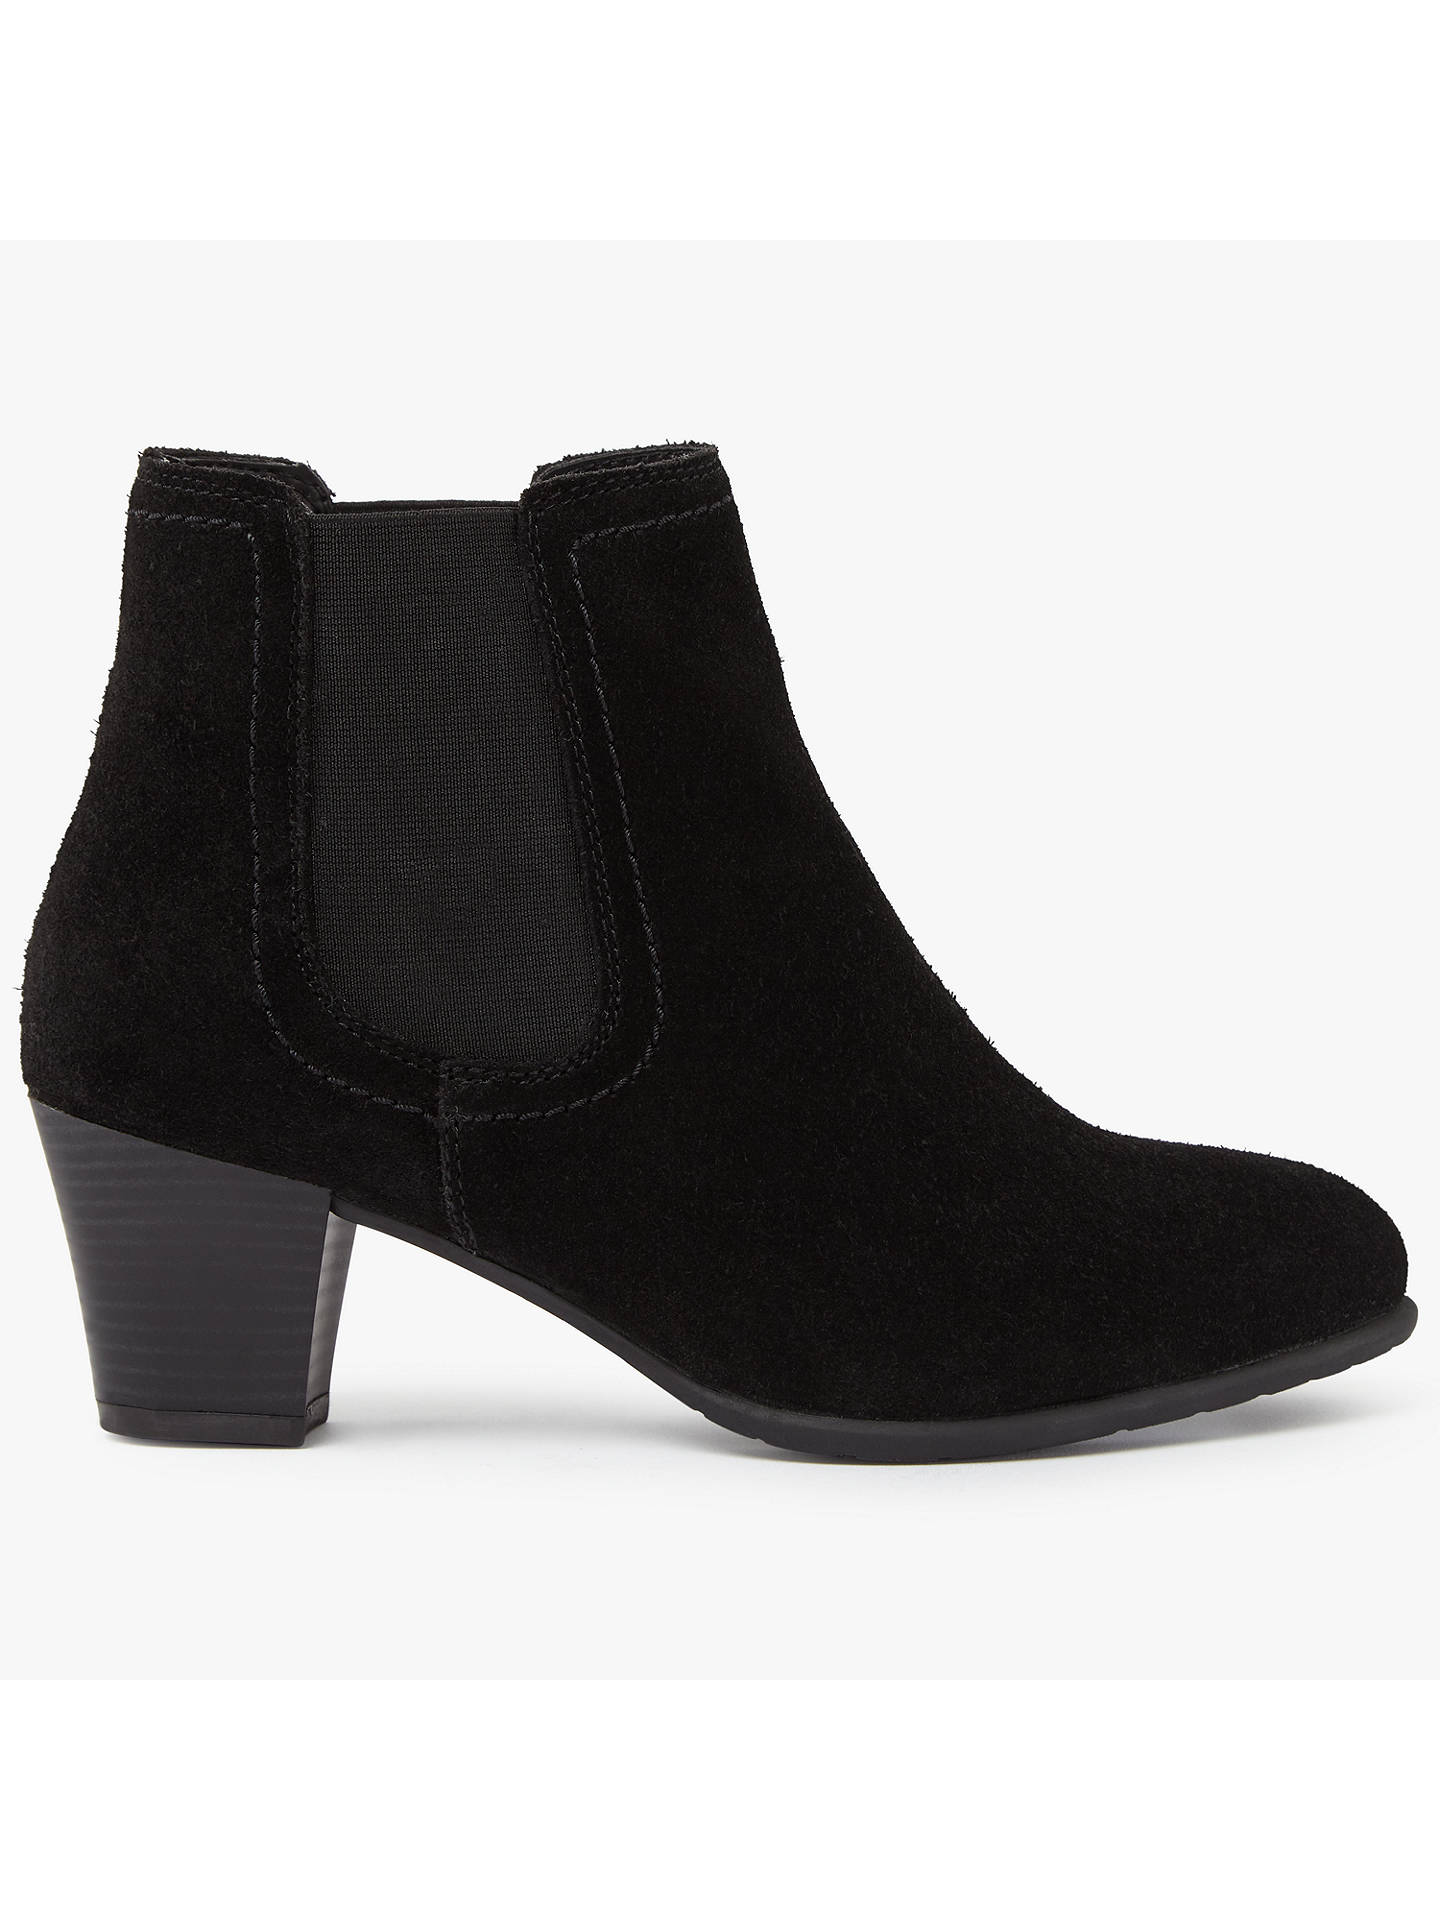 d990fcc13 Buy John Lewis Faith Block Heeled Ankle Chelsea Boots, Black Suede, 3  Online at ...